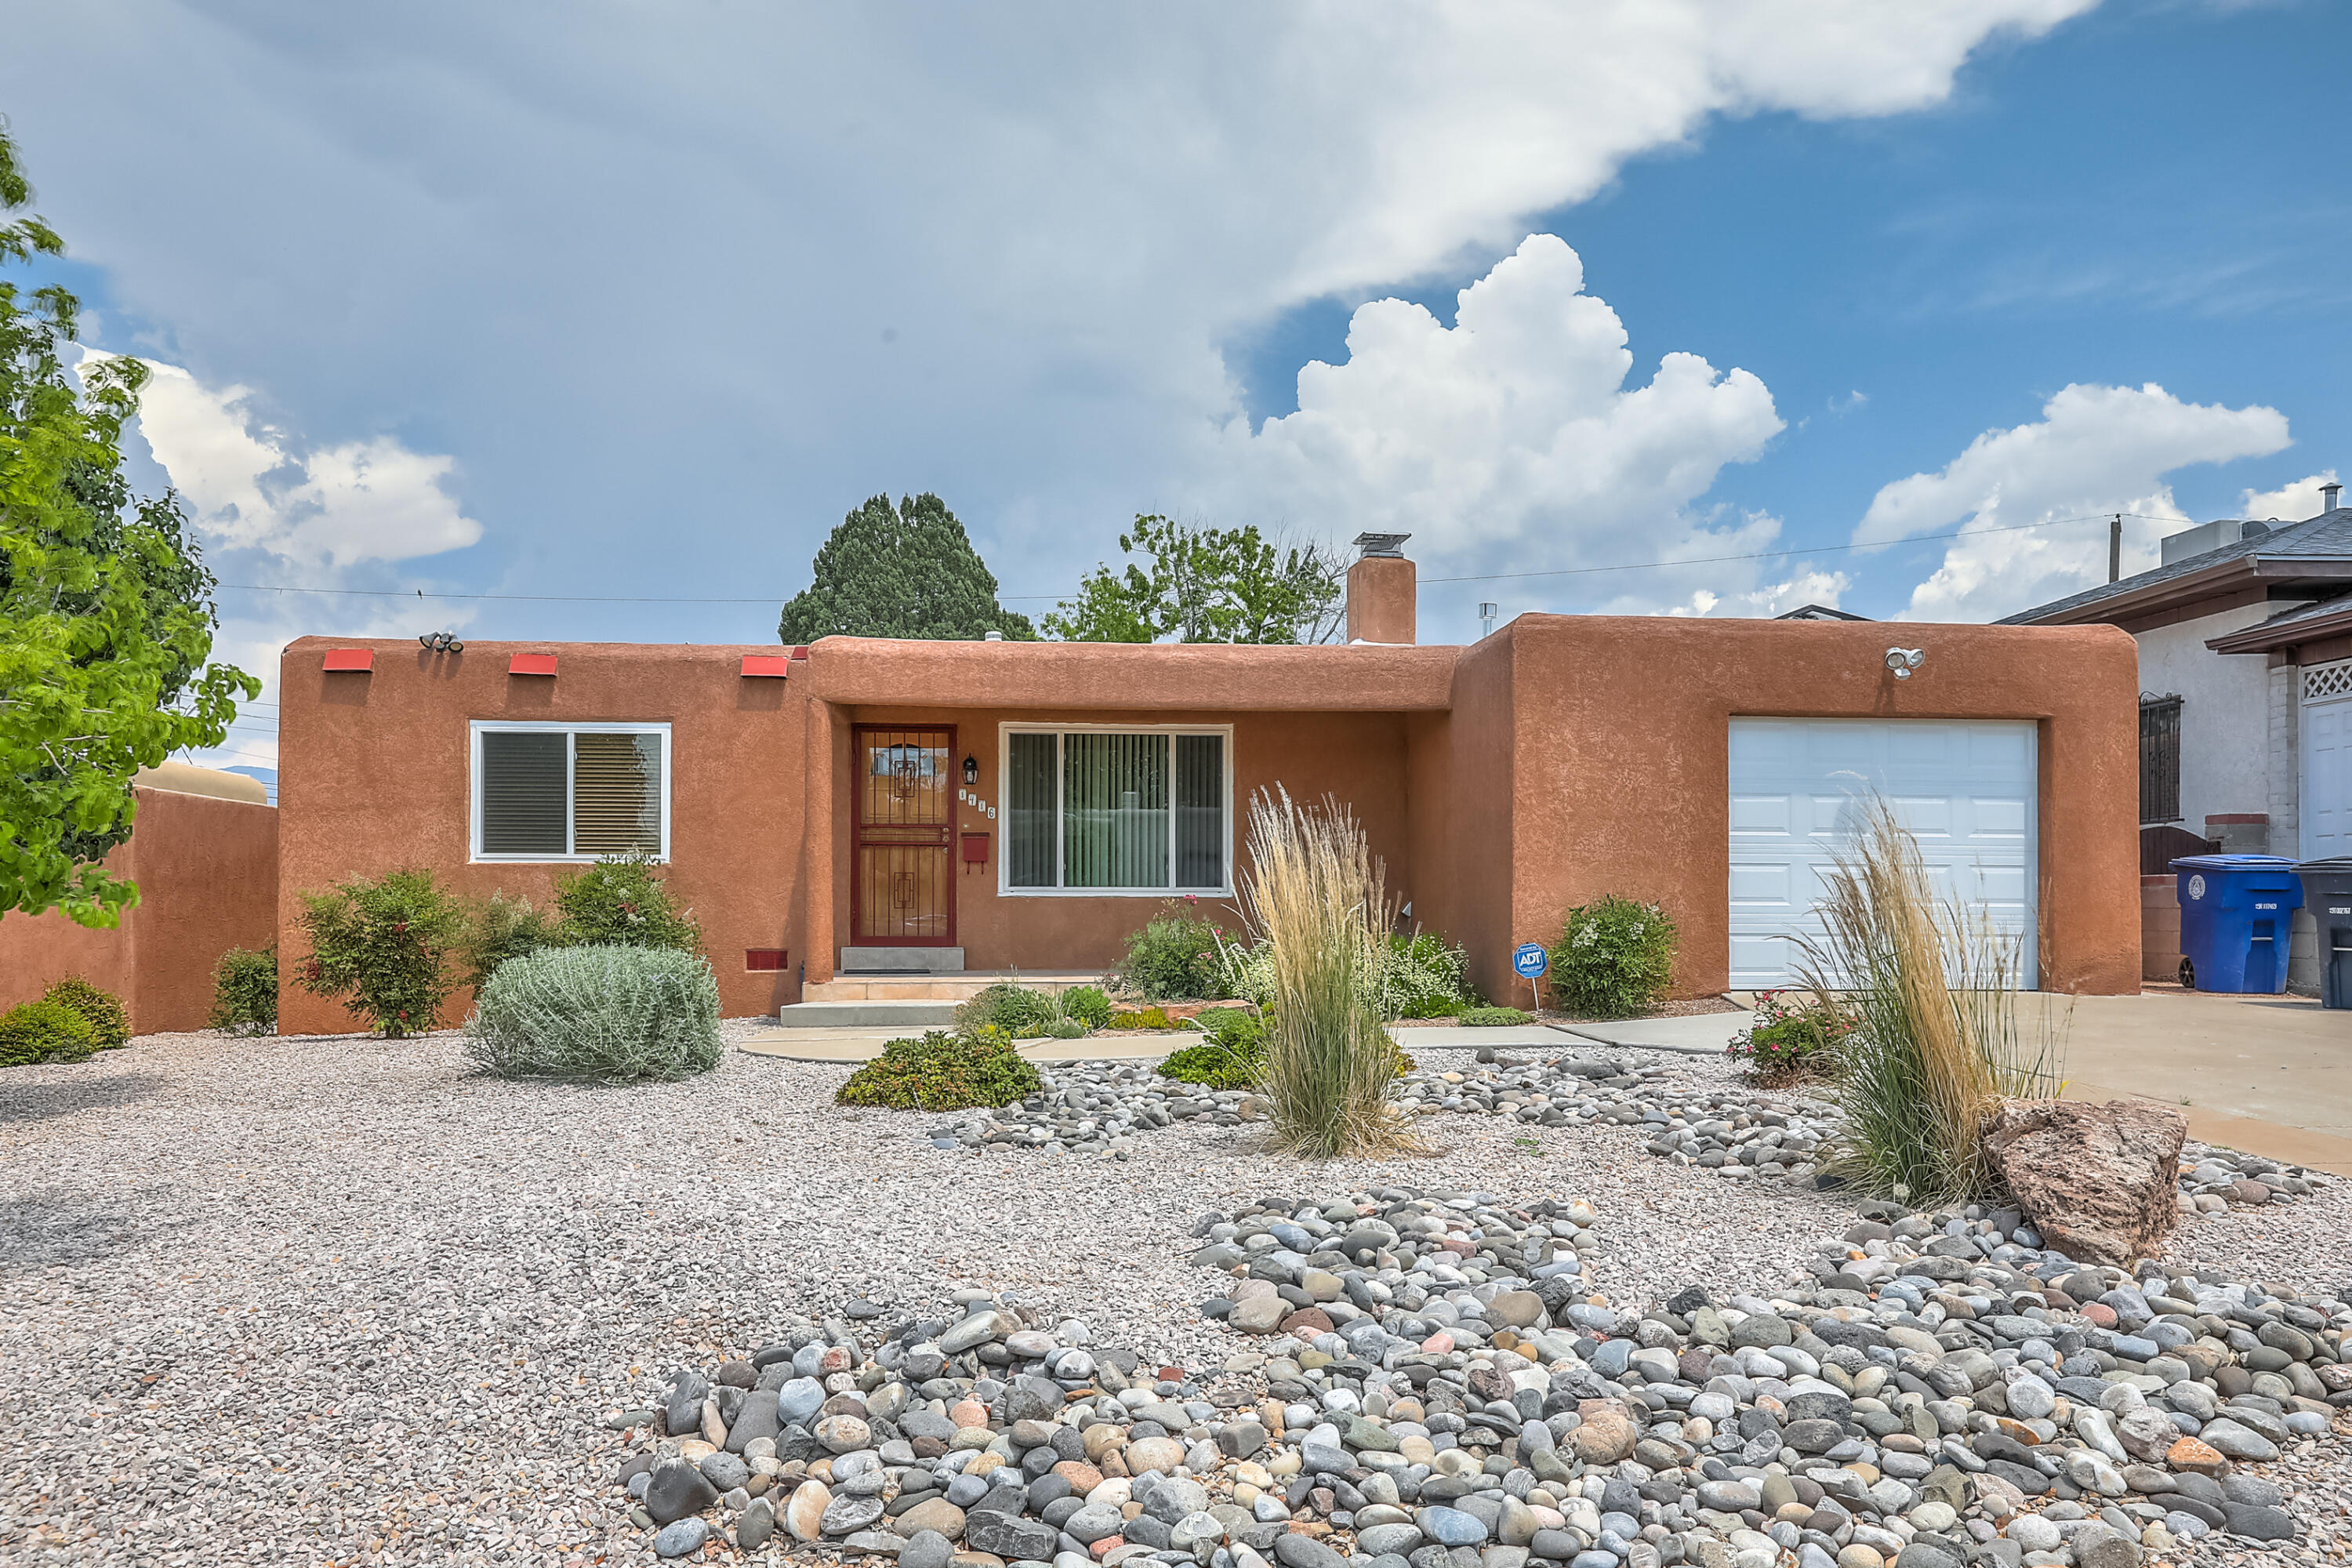 You won't want to miss this open house on Saturday June 19th from 10am to 12! This 3 bed, 2 bath, North UNM gem is move in ready and complete with a brand new roof with warranty. It's beautiful front and back yard landscaping compliments the east facing back yard. Inside,  hardwood floors are found throughout the home other than the beautifully tiled bathrooms.  The large living room is highlighted by a brick fireplace and a large west facing window to a view of your beautifully landscaped front yard and cozy porch.  Or you can cool off this summer with central forced air supplied by the owned solar unit on the roof!